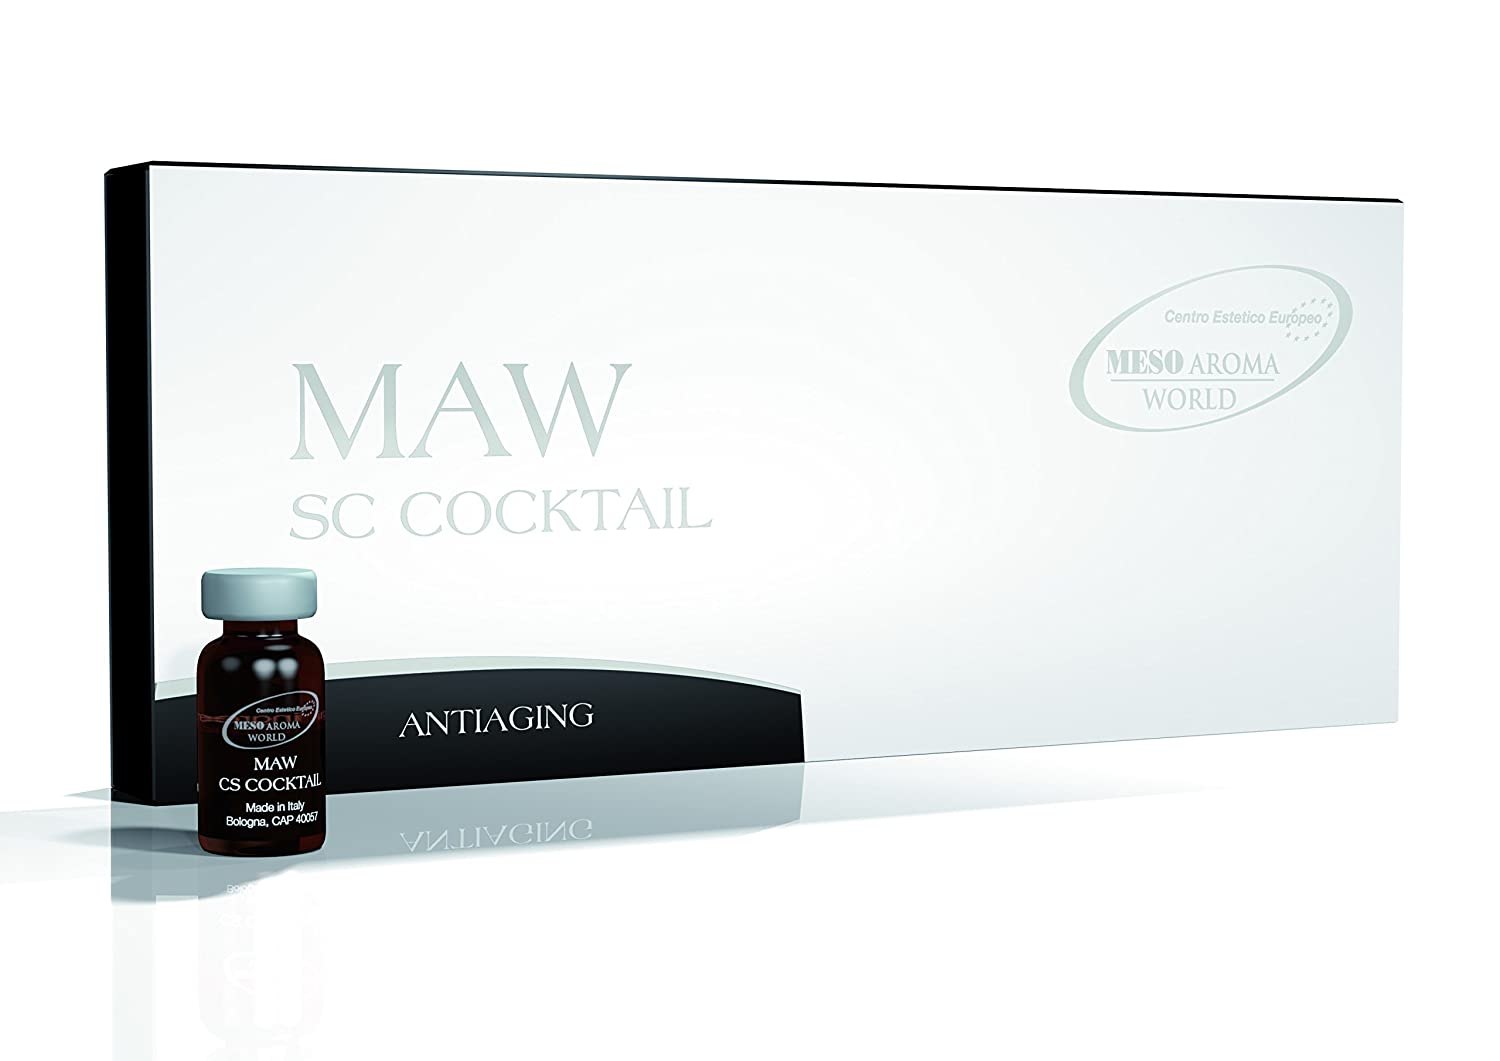 MESOTHERAPY- MAW | SC COCKTAIL- Injections or microneedling